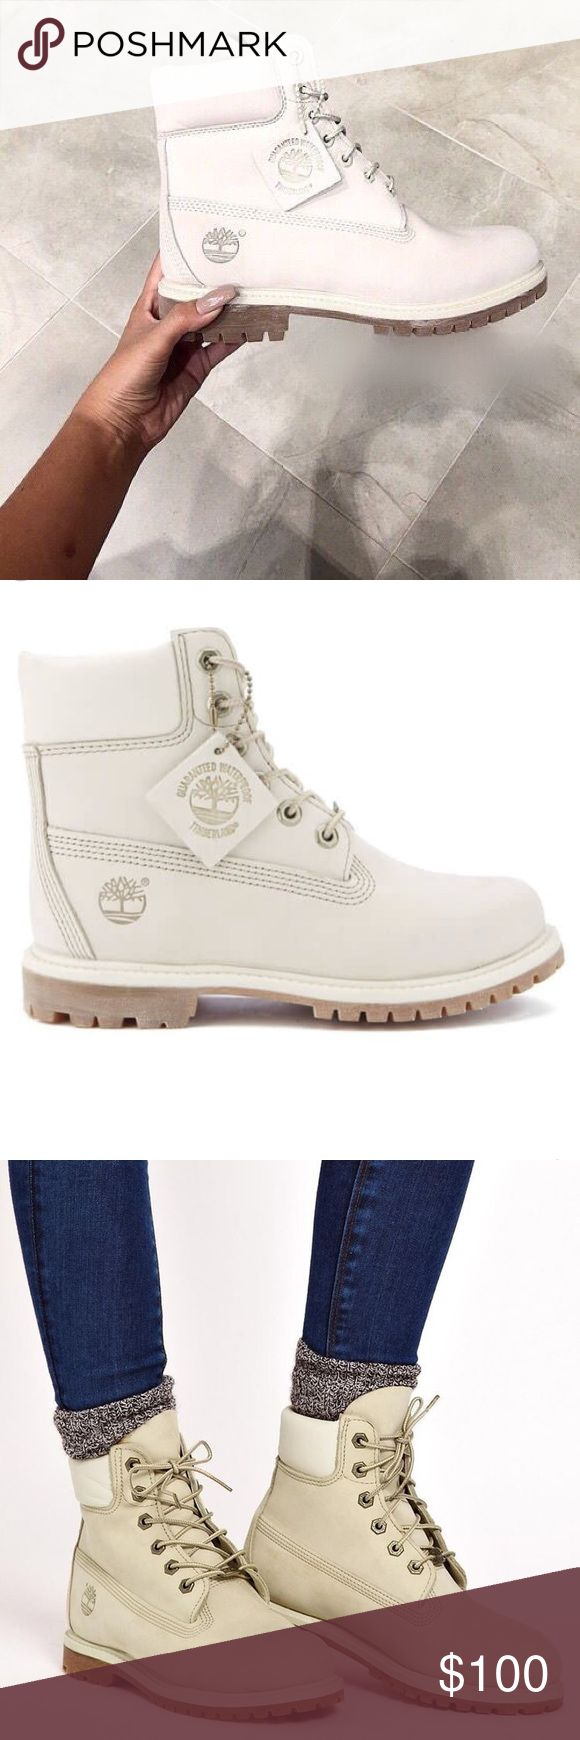 Timberland 6 inch Boots ☁️ White Timberland boots! Waterproof. Perfect for Winter. Never used. They are a size 6 but fit a 7. Timberland Shoes Winter & Rain Boots